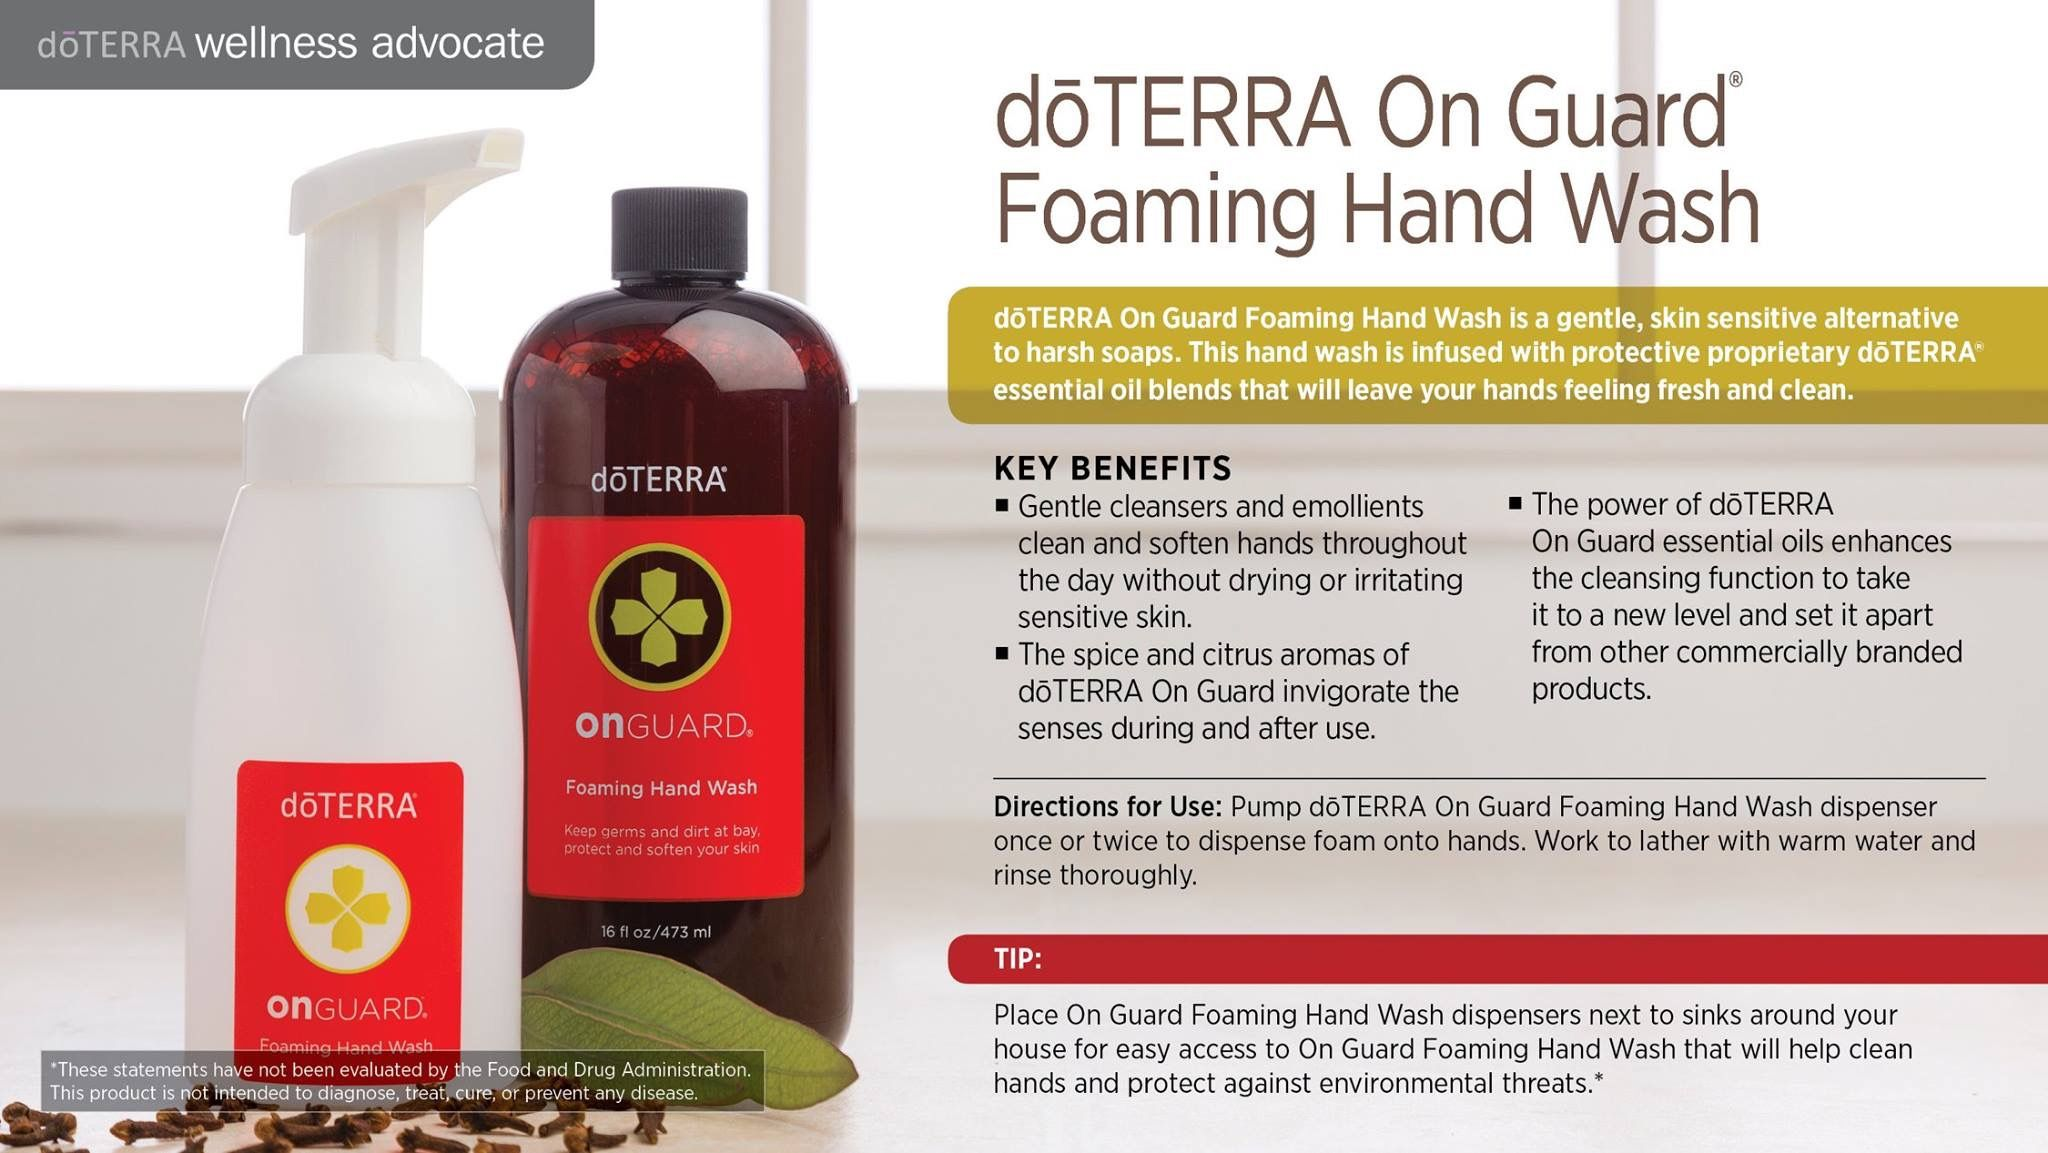 Pin By Whitney Mabry On Doterra Foaming Hand Wash Foaming Hand